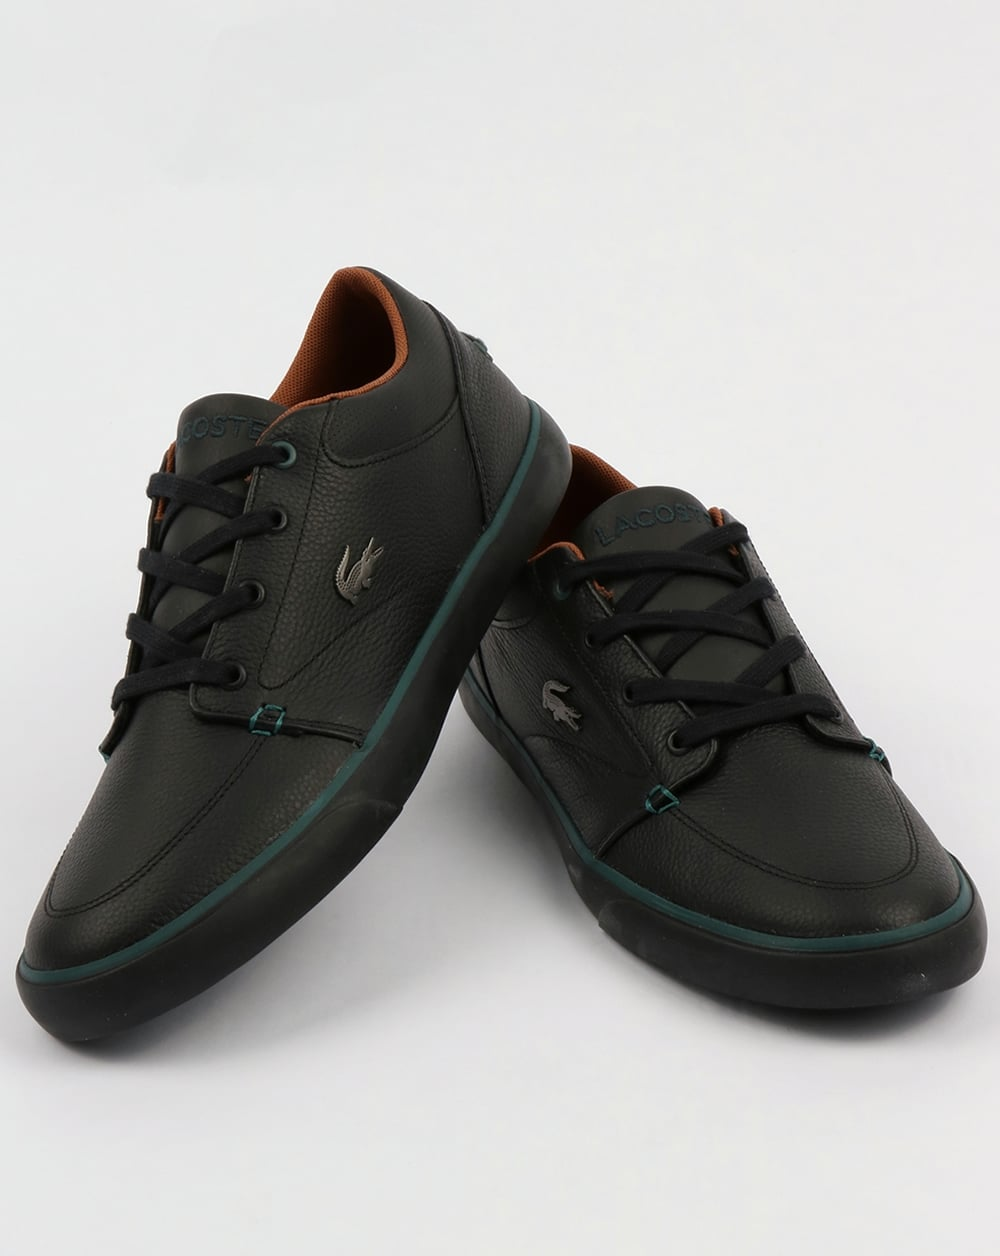 5cfd9a1cd Lacoste Footwear Bayliss Leather Trainers Black